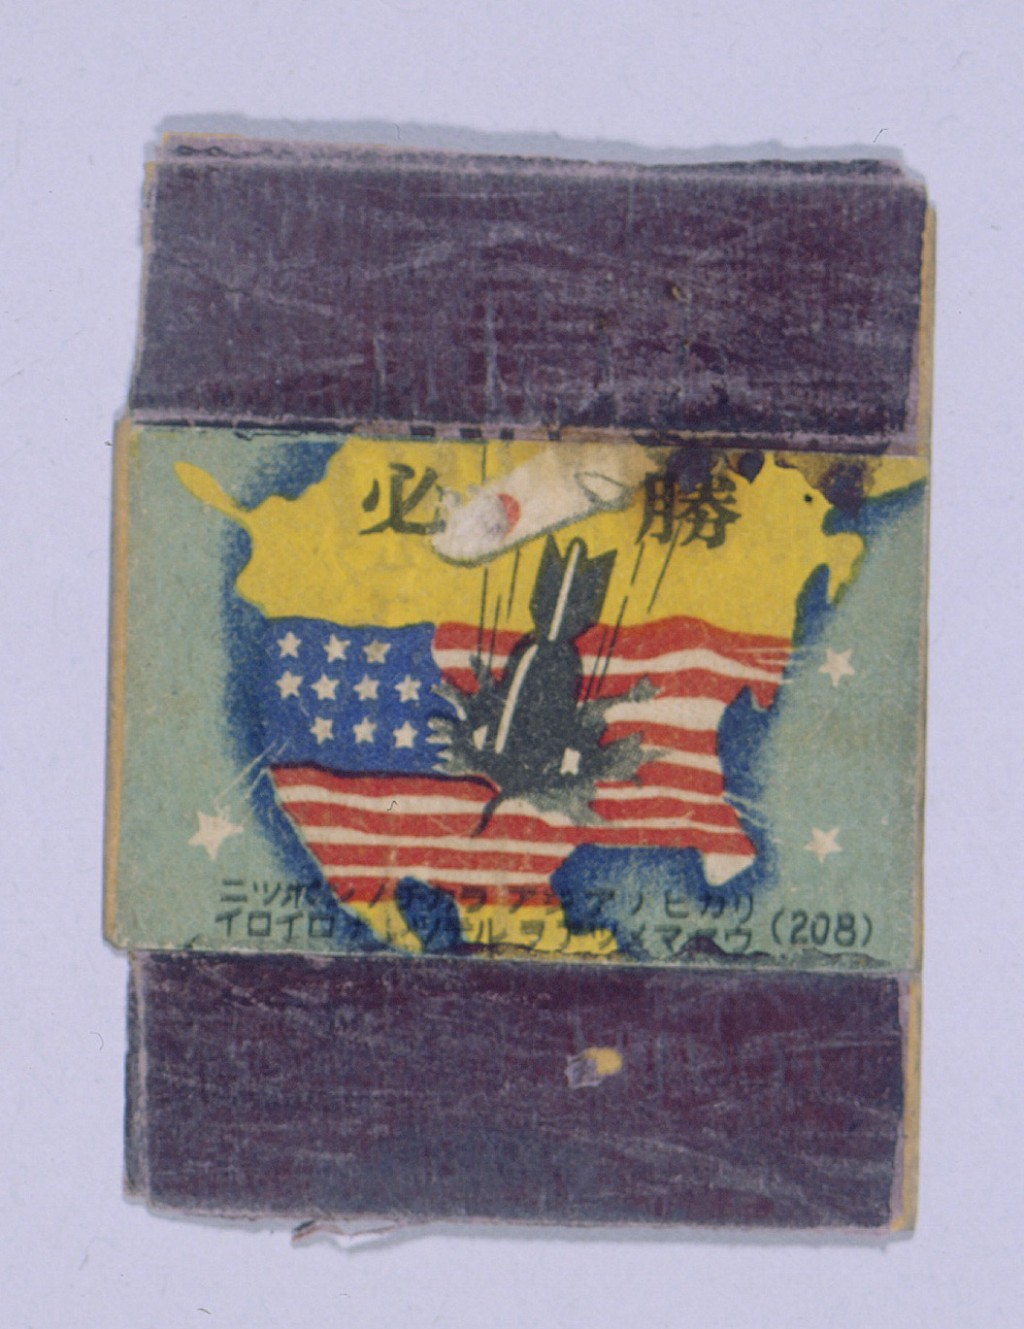 Matchbox cover with Japanese propaganda illustration [LCID: 2000u9x4]